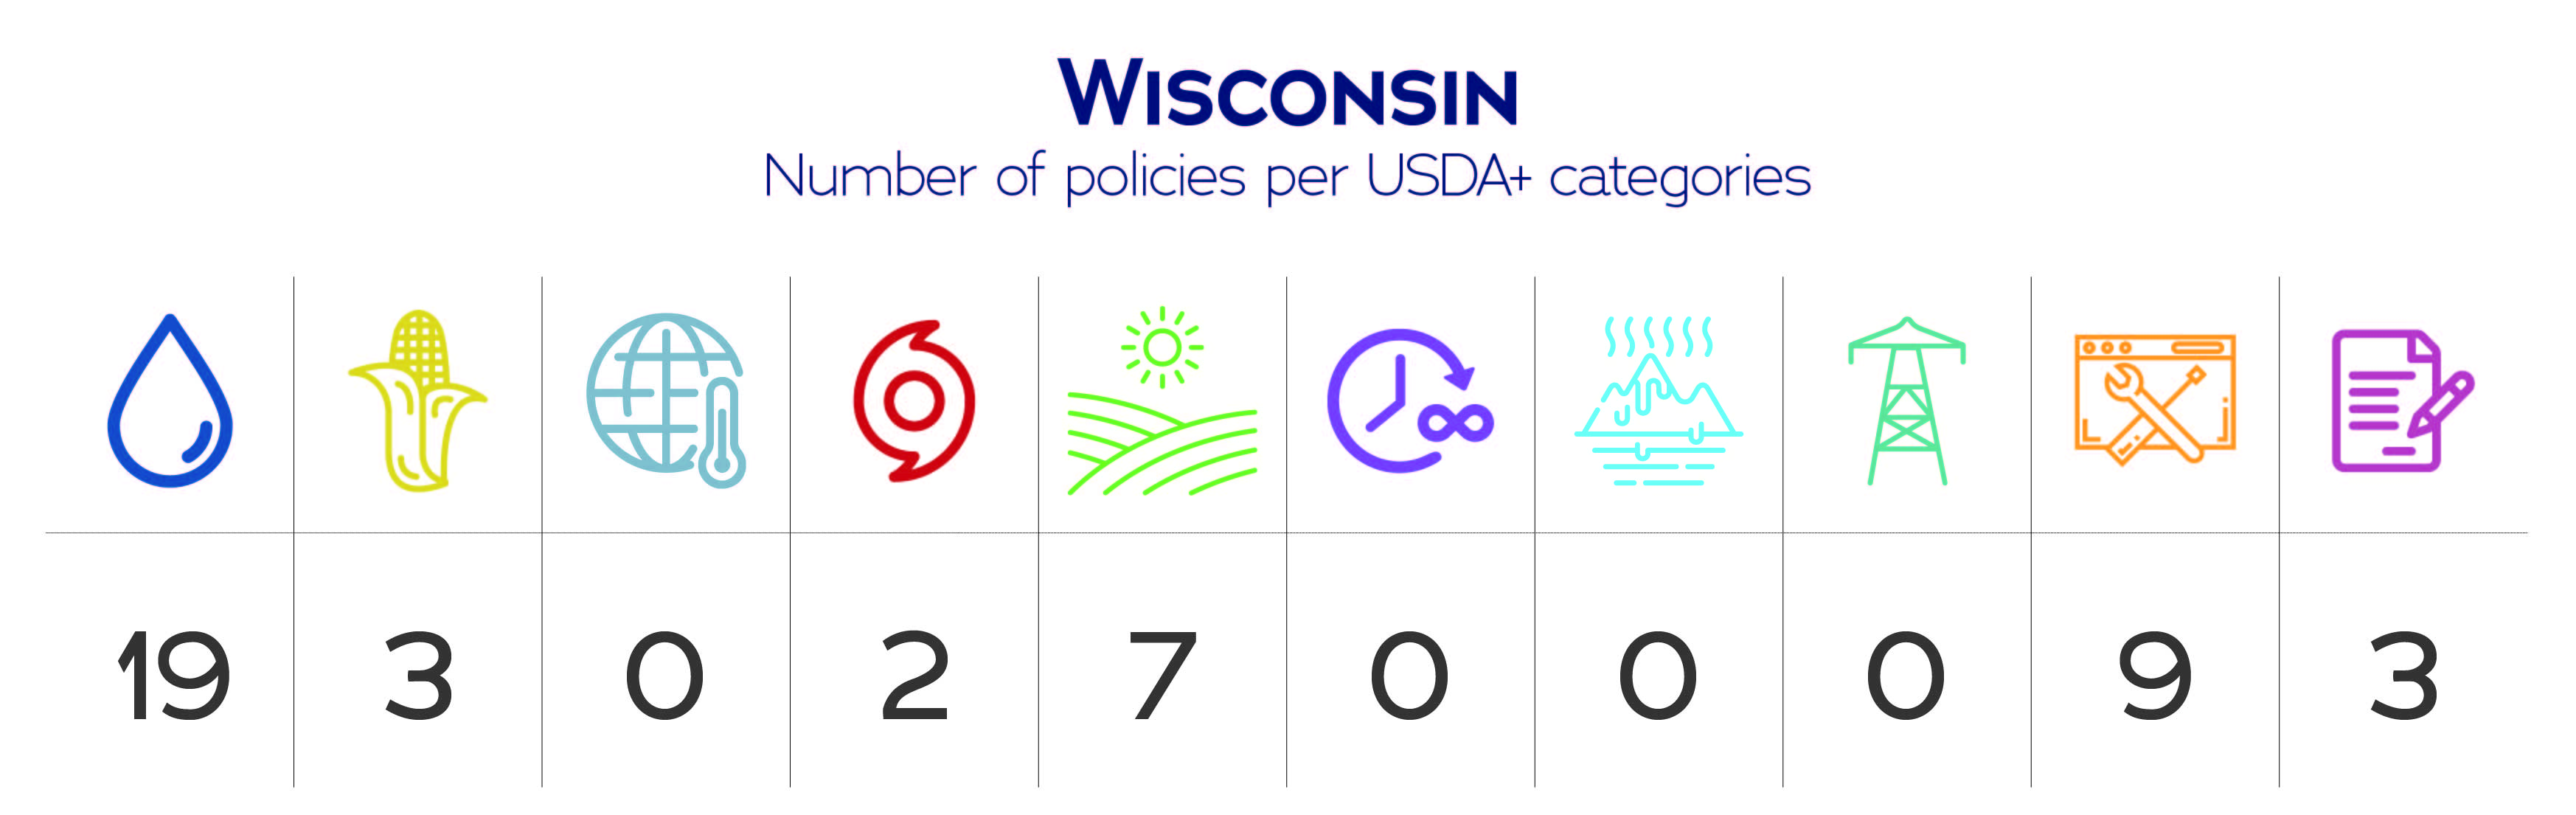 Wisconsin USDA+ category data